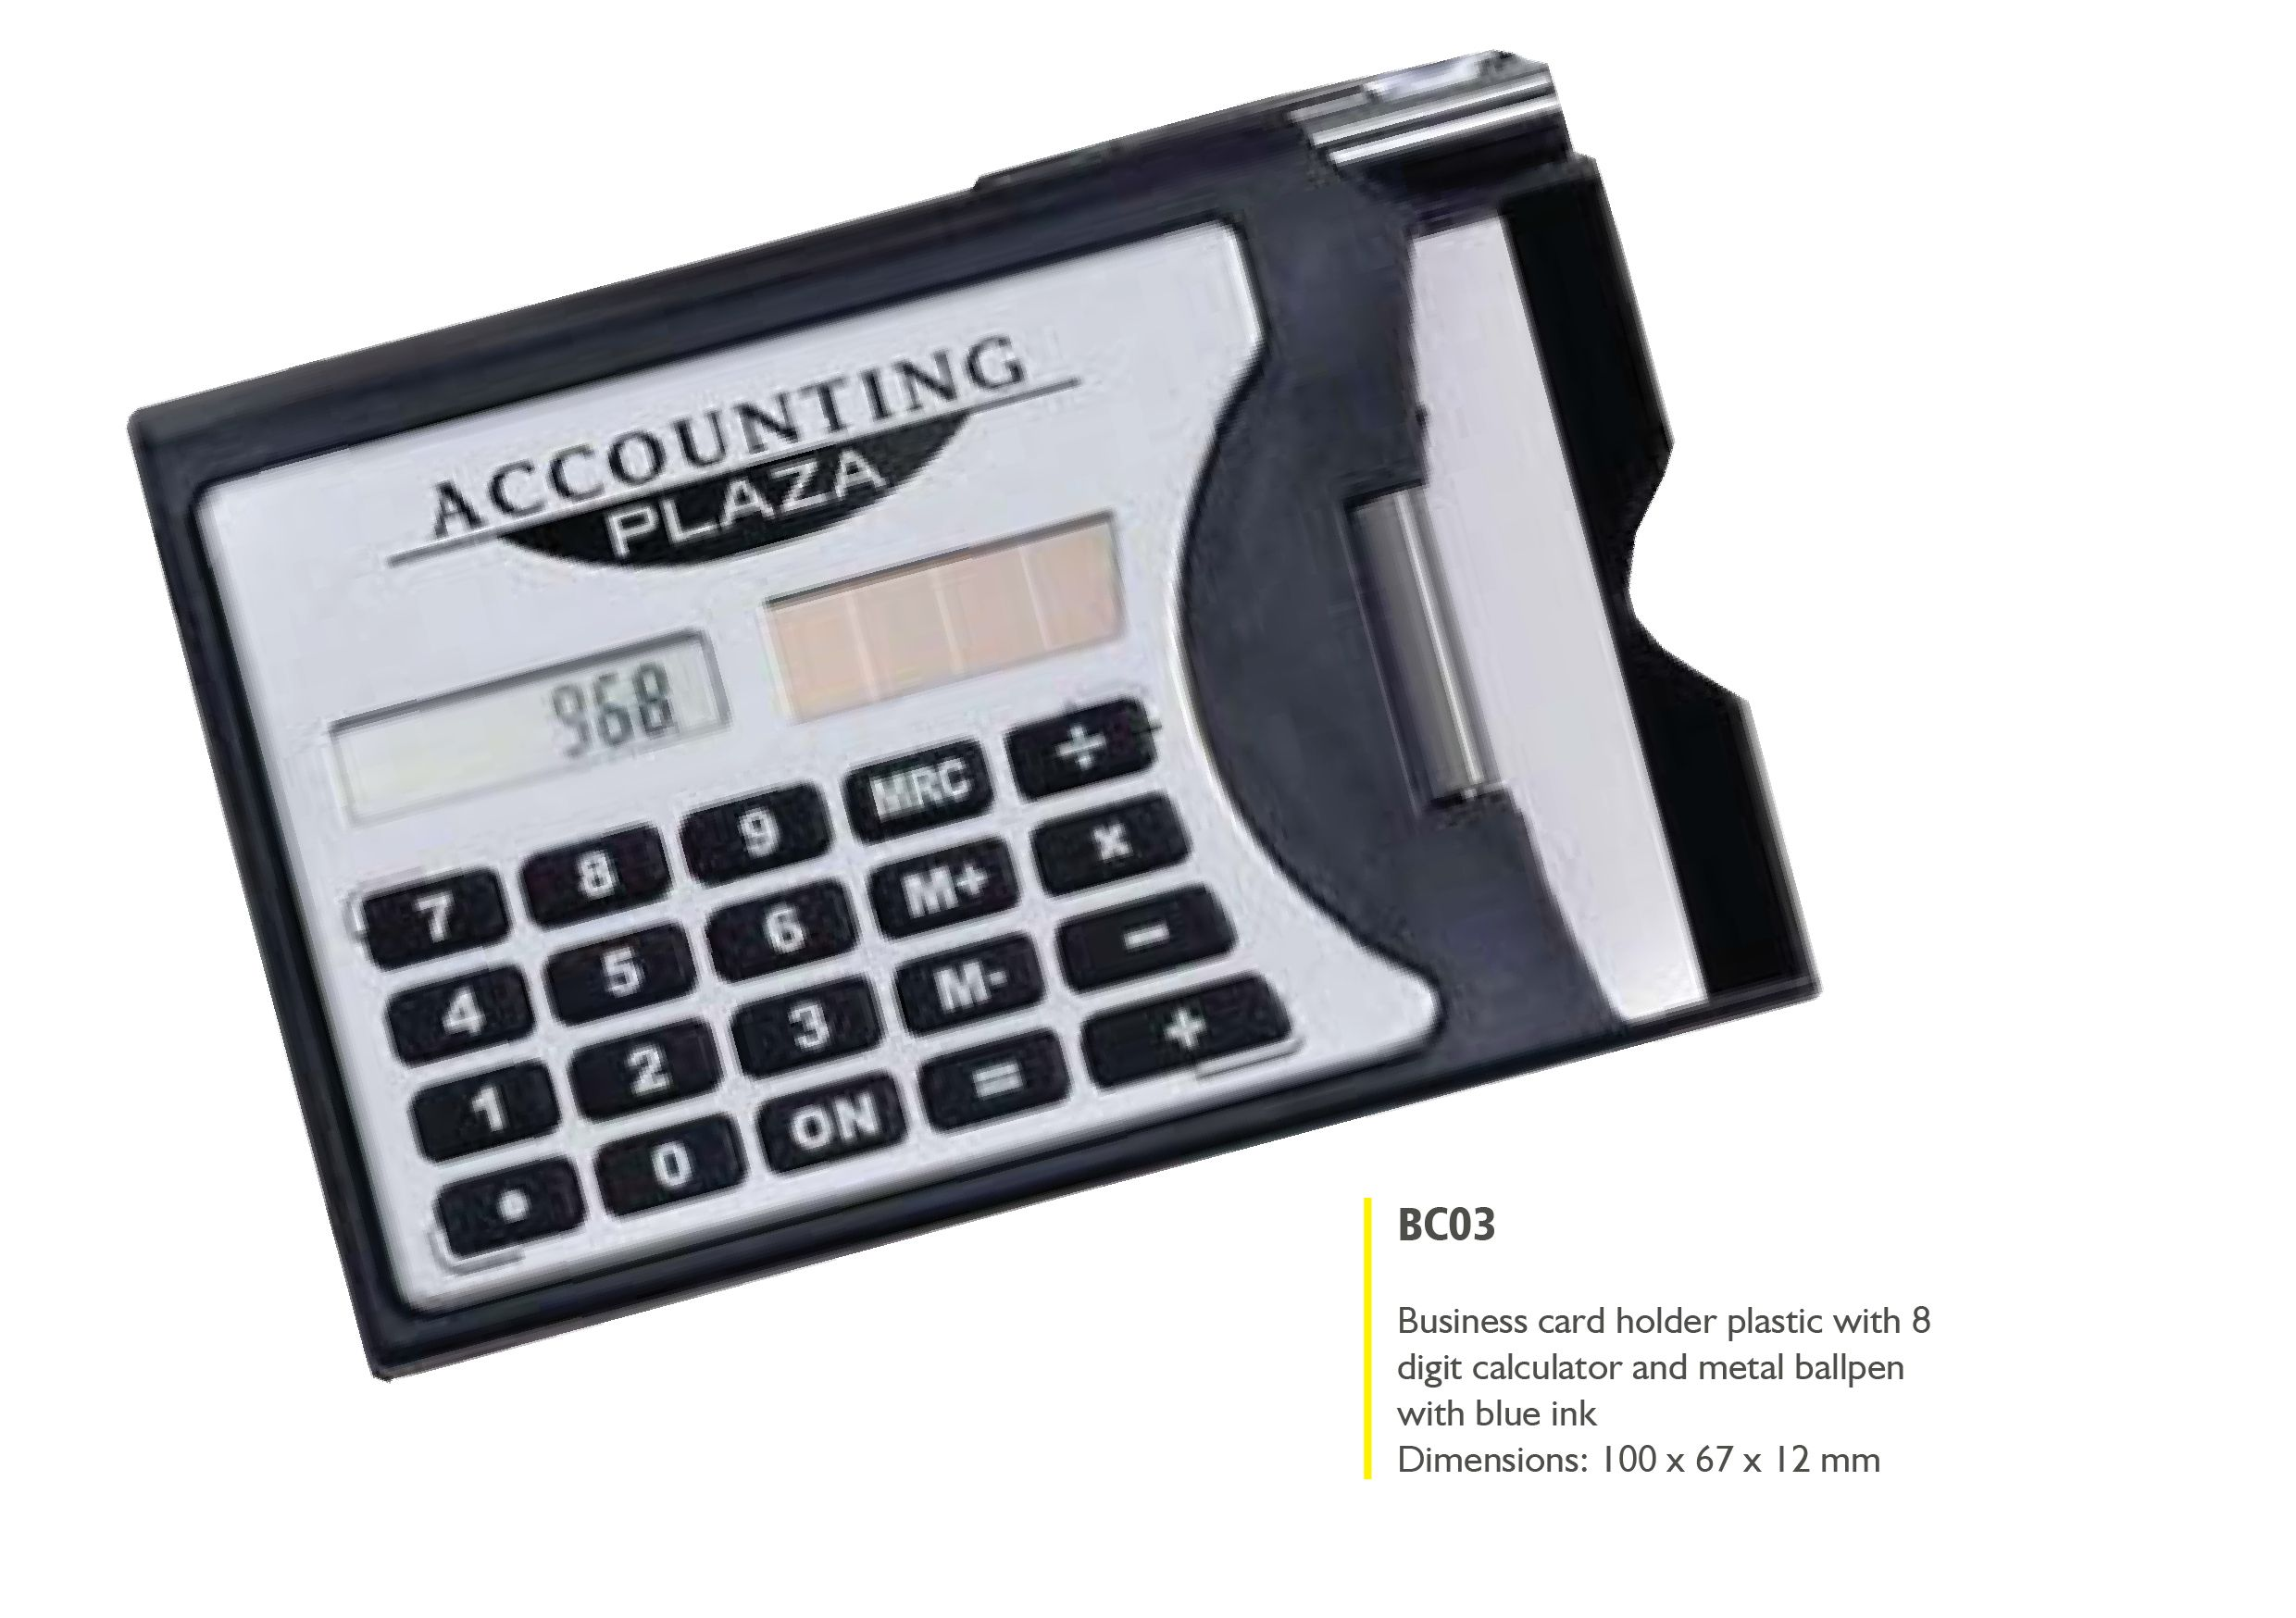 Plastic Business Card Holder with Calculator and Metal Ballpen ...